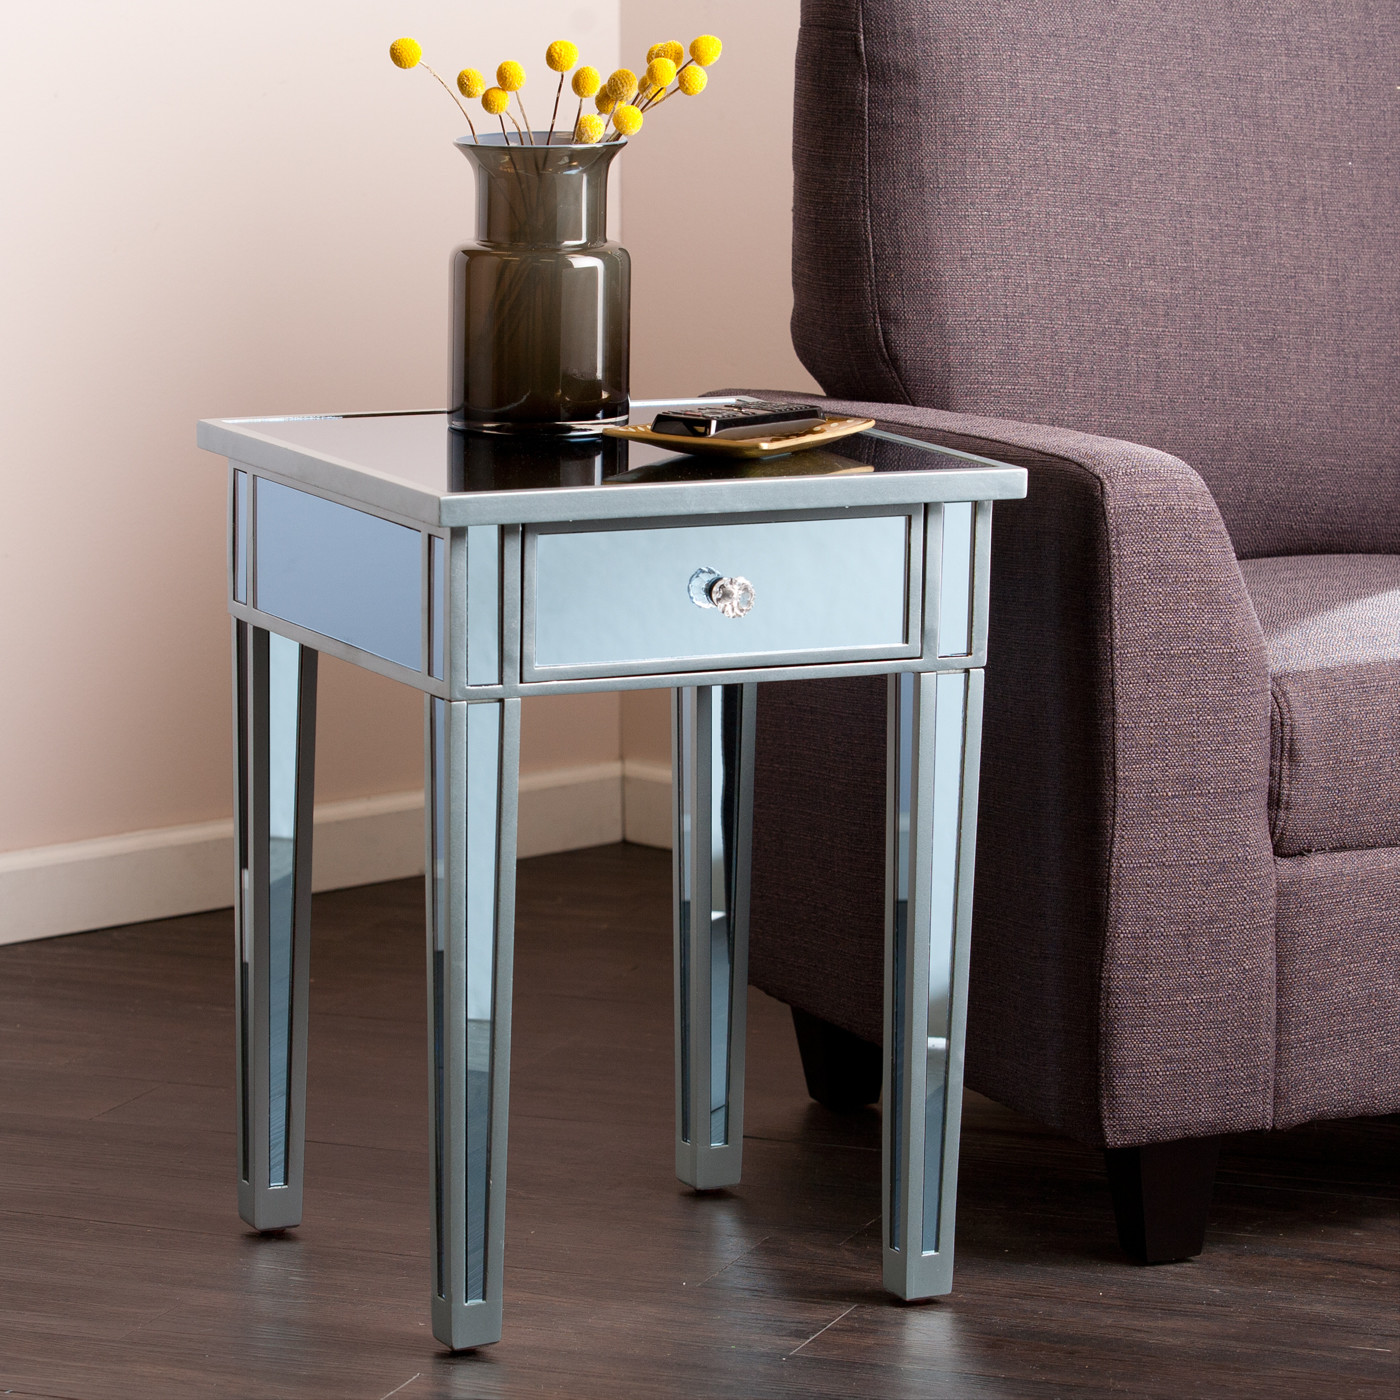 delectable target accent end tables white for bench and storage living table modern tall cabinet kijiji room ott outdoor glass gold round antique decorative threshold furniture